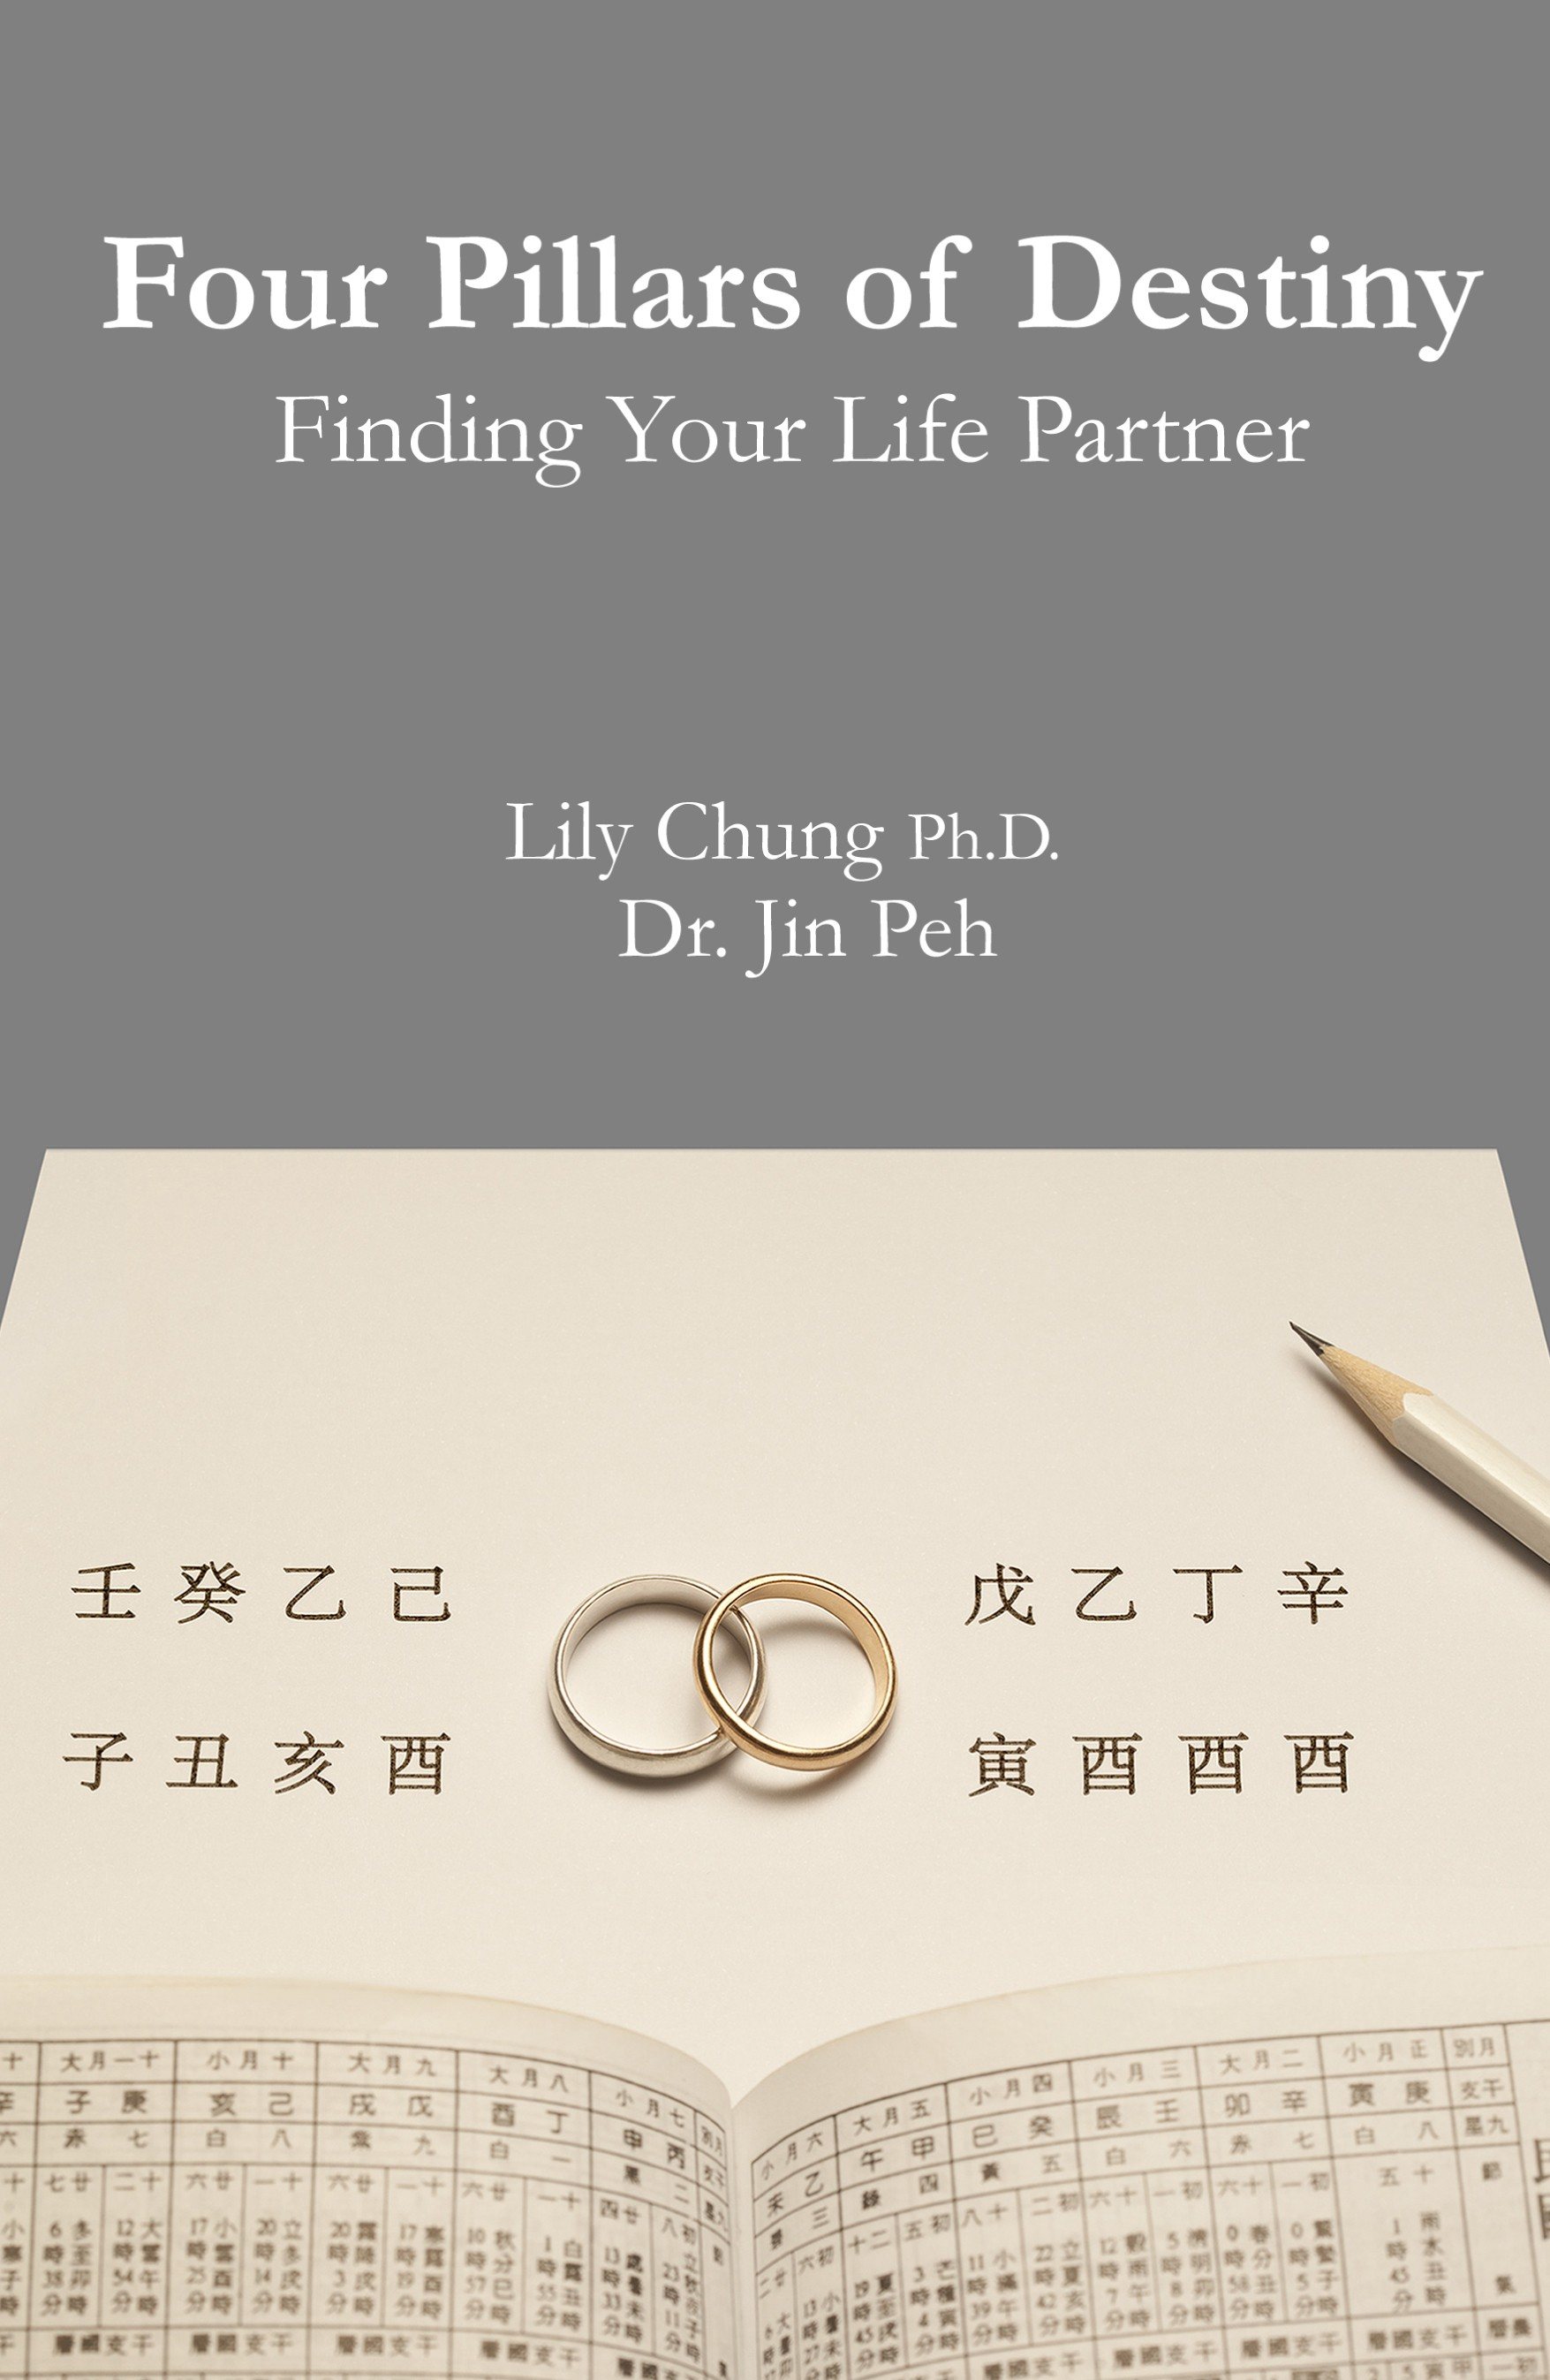 Four Pillars of Destiny: Finding your Life Partner by Lily Chung Ph